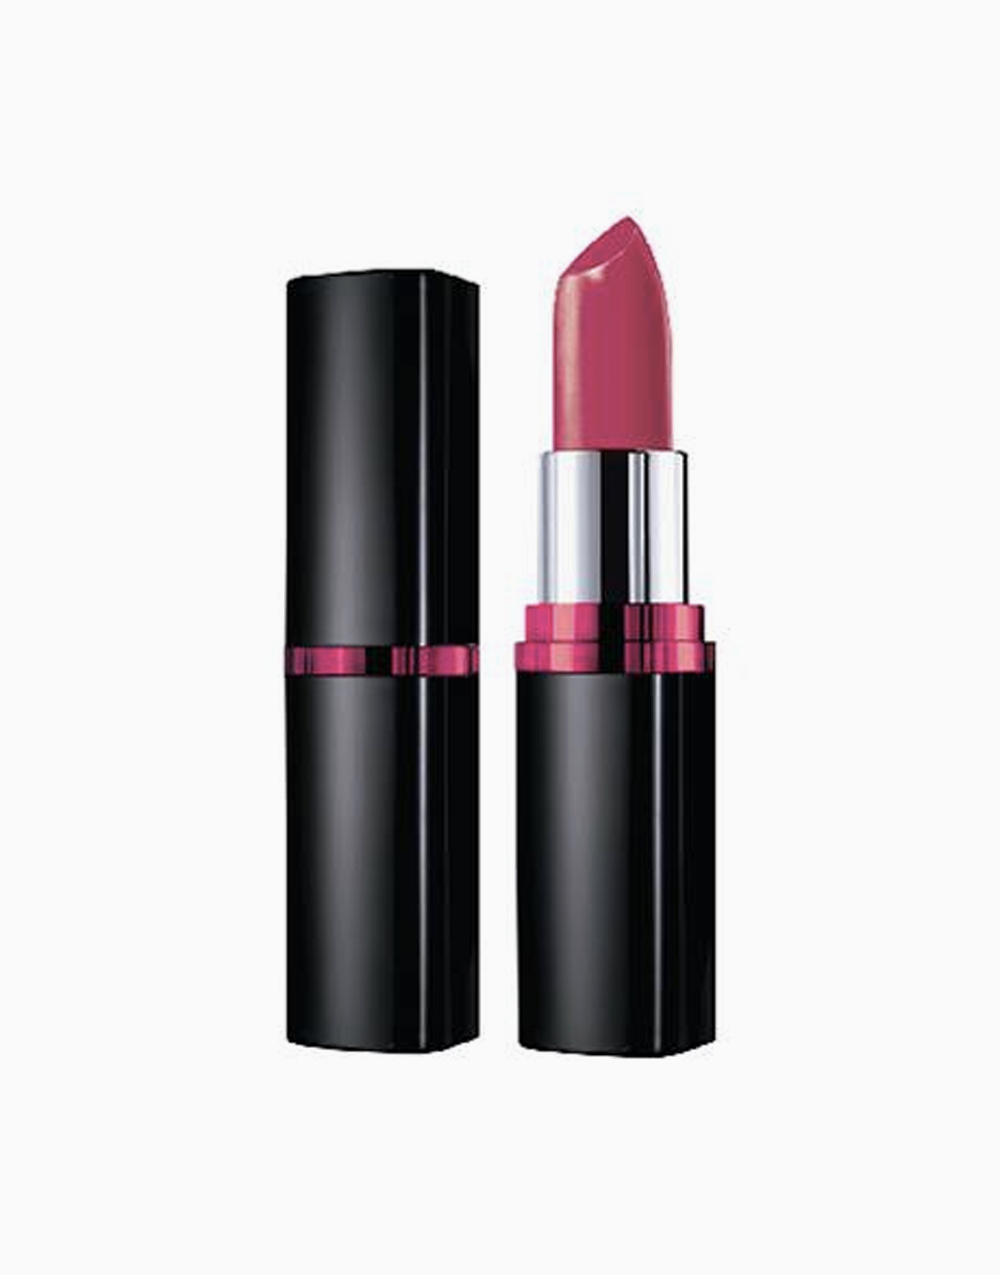 ColorSensational Vivid Creamy Matte Lipstick by Maybelline | Flaming Fuchsia